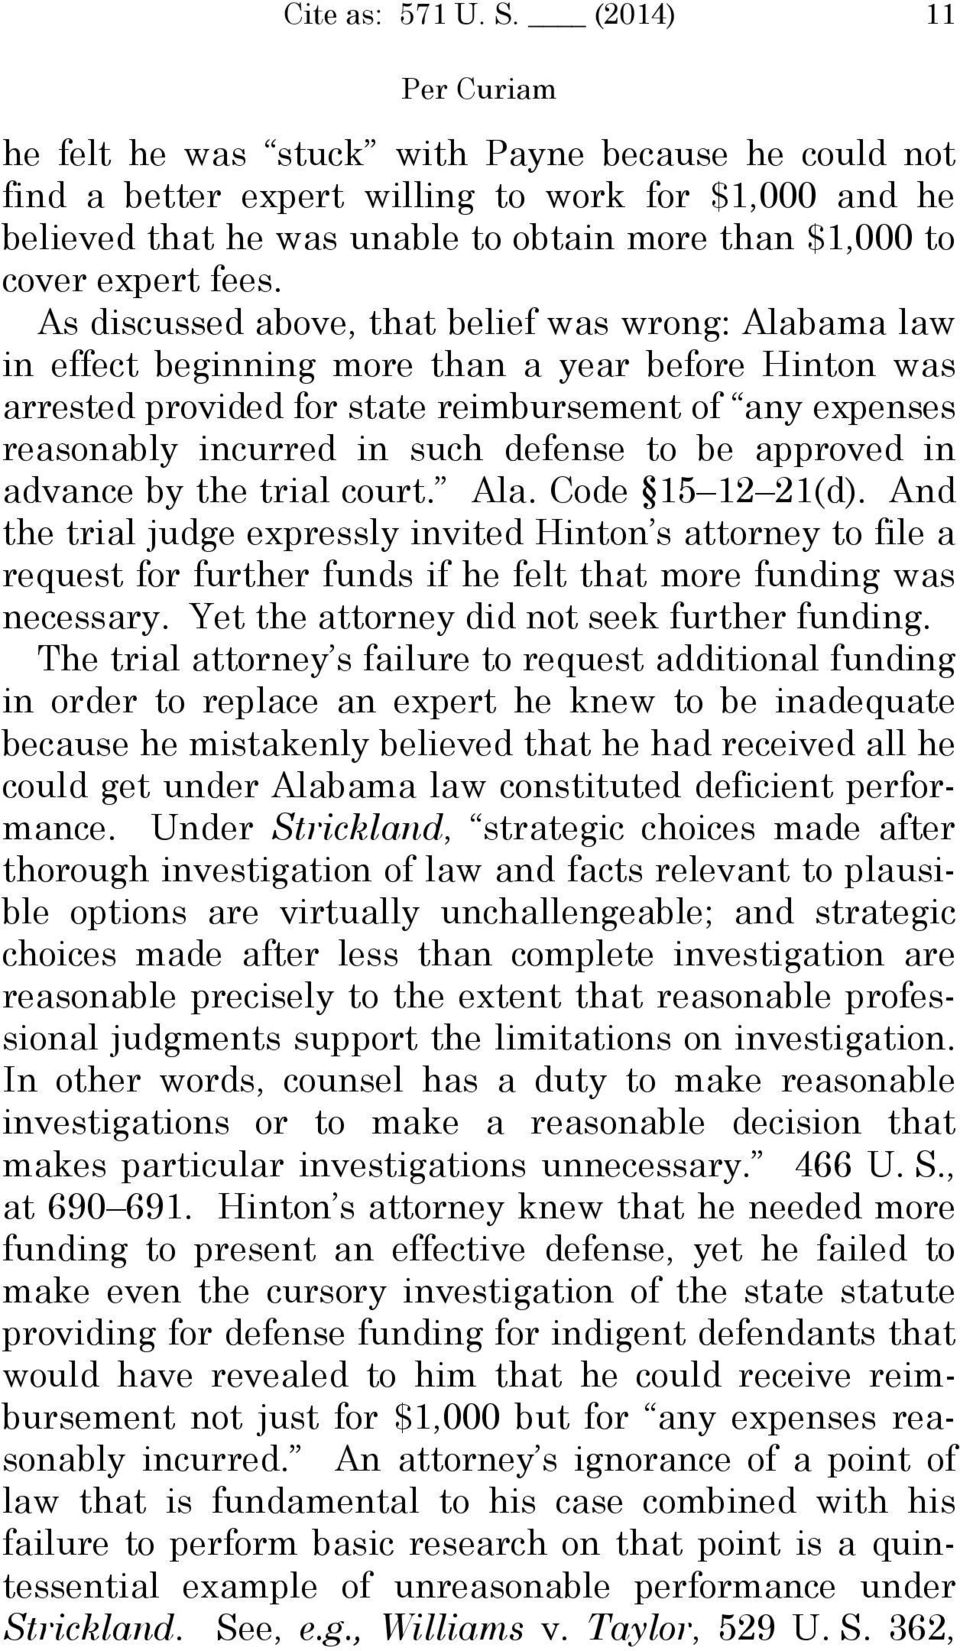 As discussed above, that belief was wrong: Alabama law in effect beginning more than a year before Hinton was arrested provided for state reimbursement of any expenses reasonably incurred in such